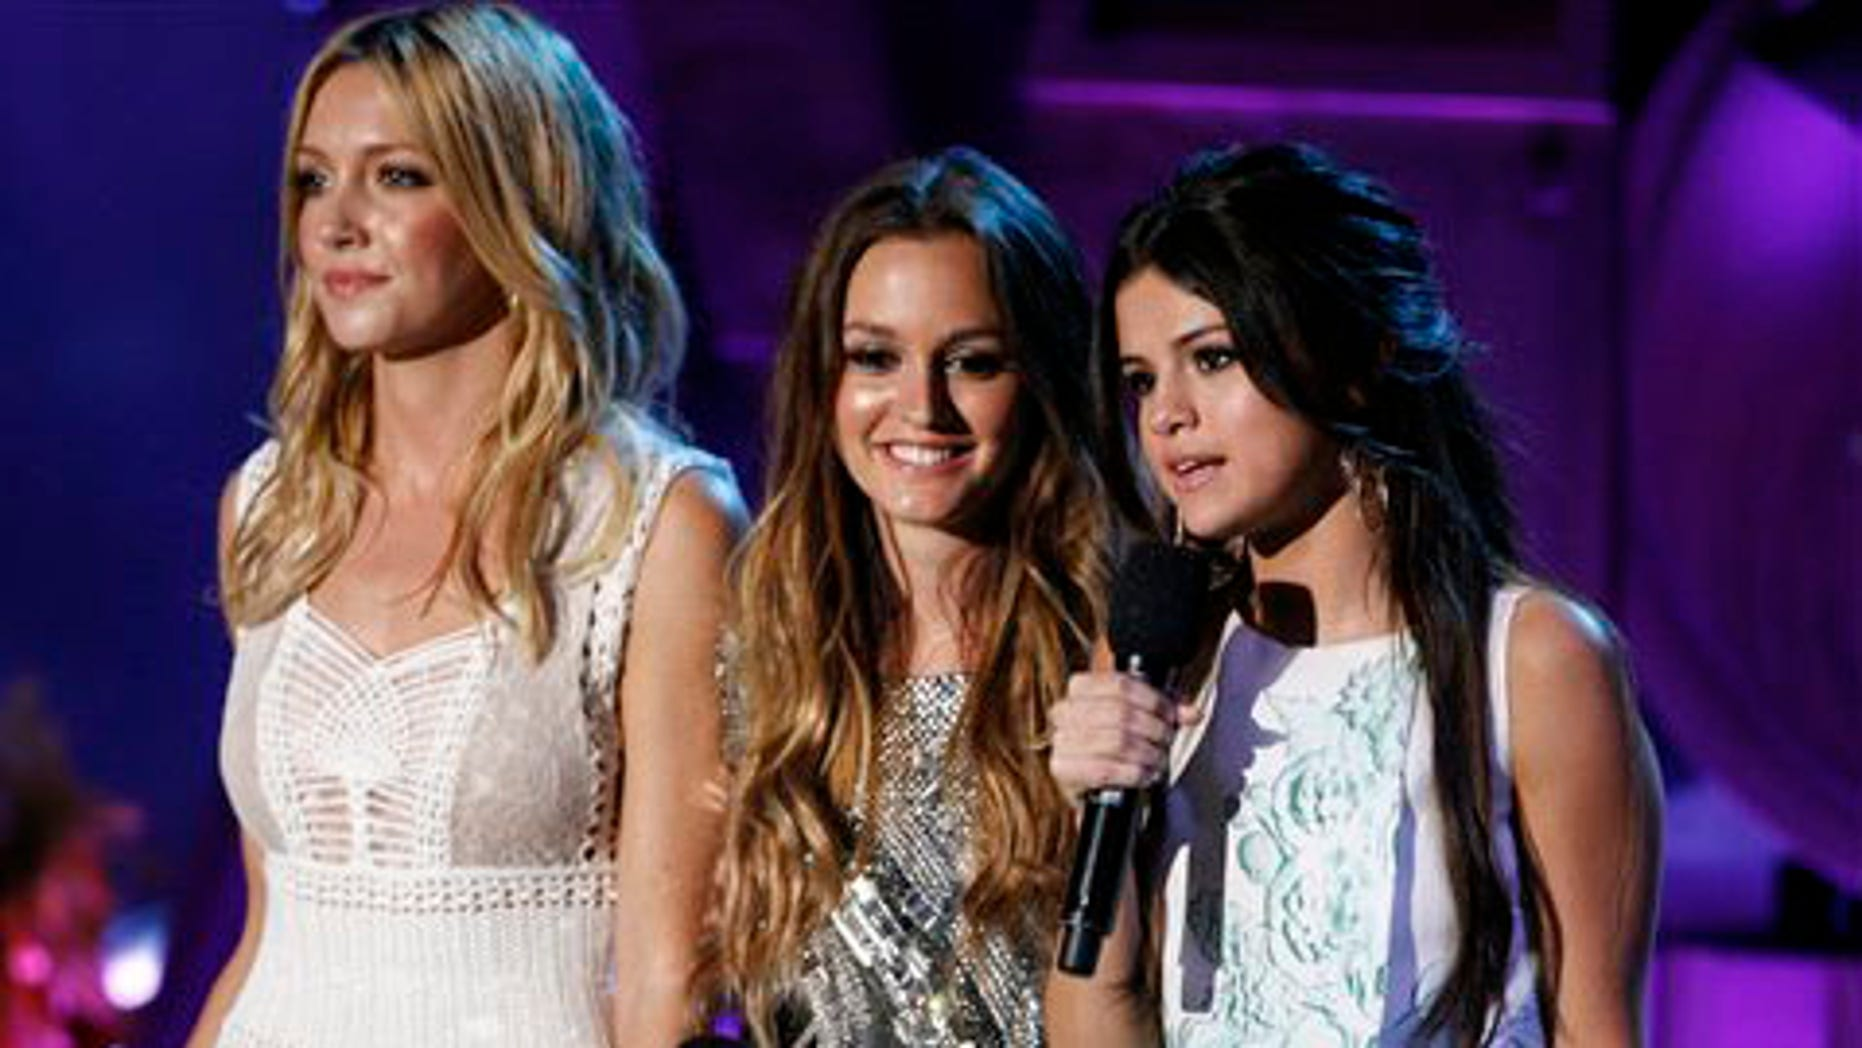 From left to right: Katie Cassidy, Leighton Meester, and Selena Gomez at the MTV Movie Awards.